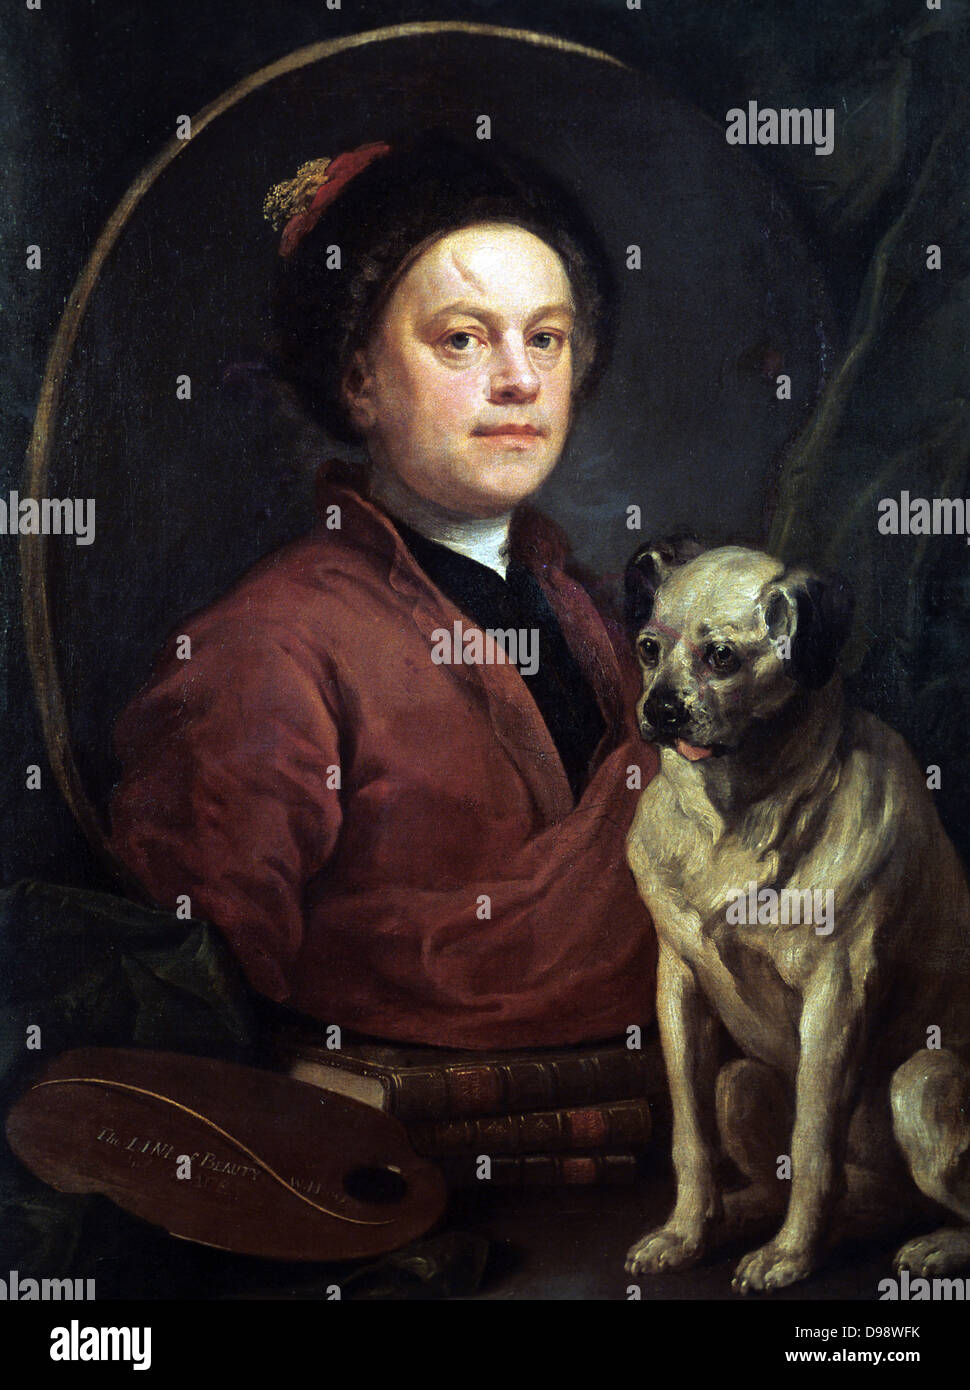 The Artist and his Dog' 1745. Wiliam Hogarth (1697-1764) English painter, printmaker, cartoonist. Self-Portrait - Stock Image